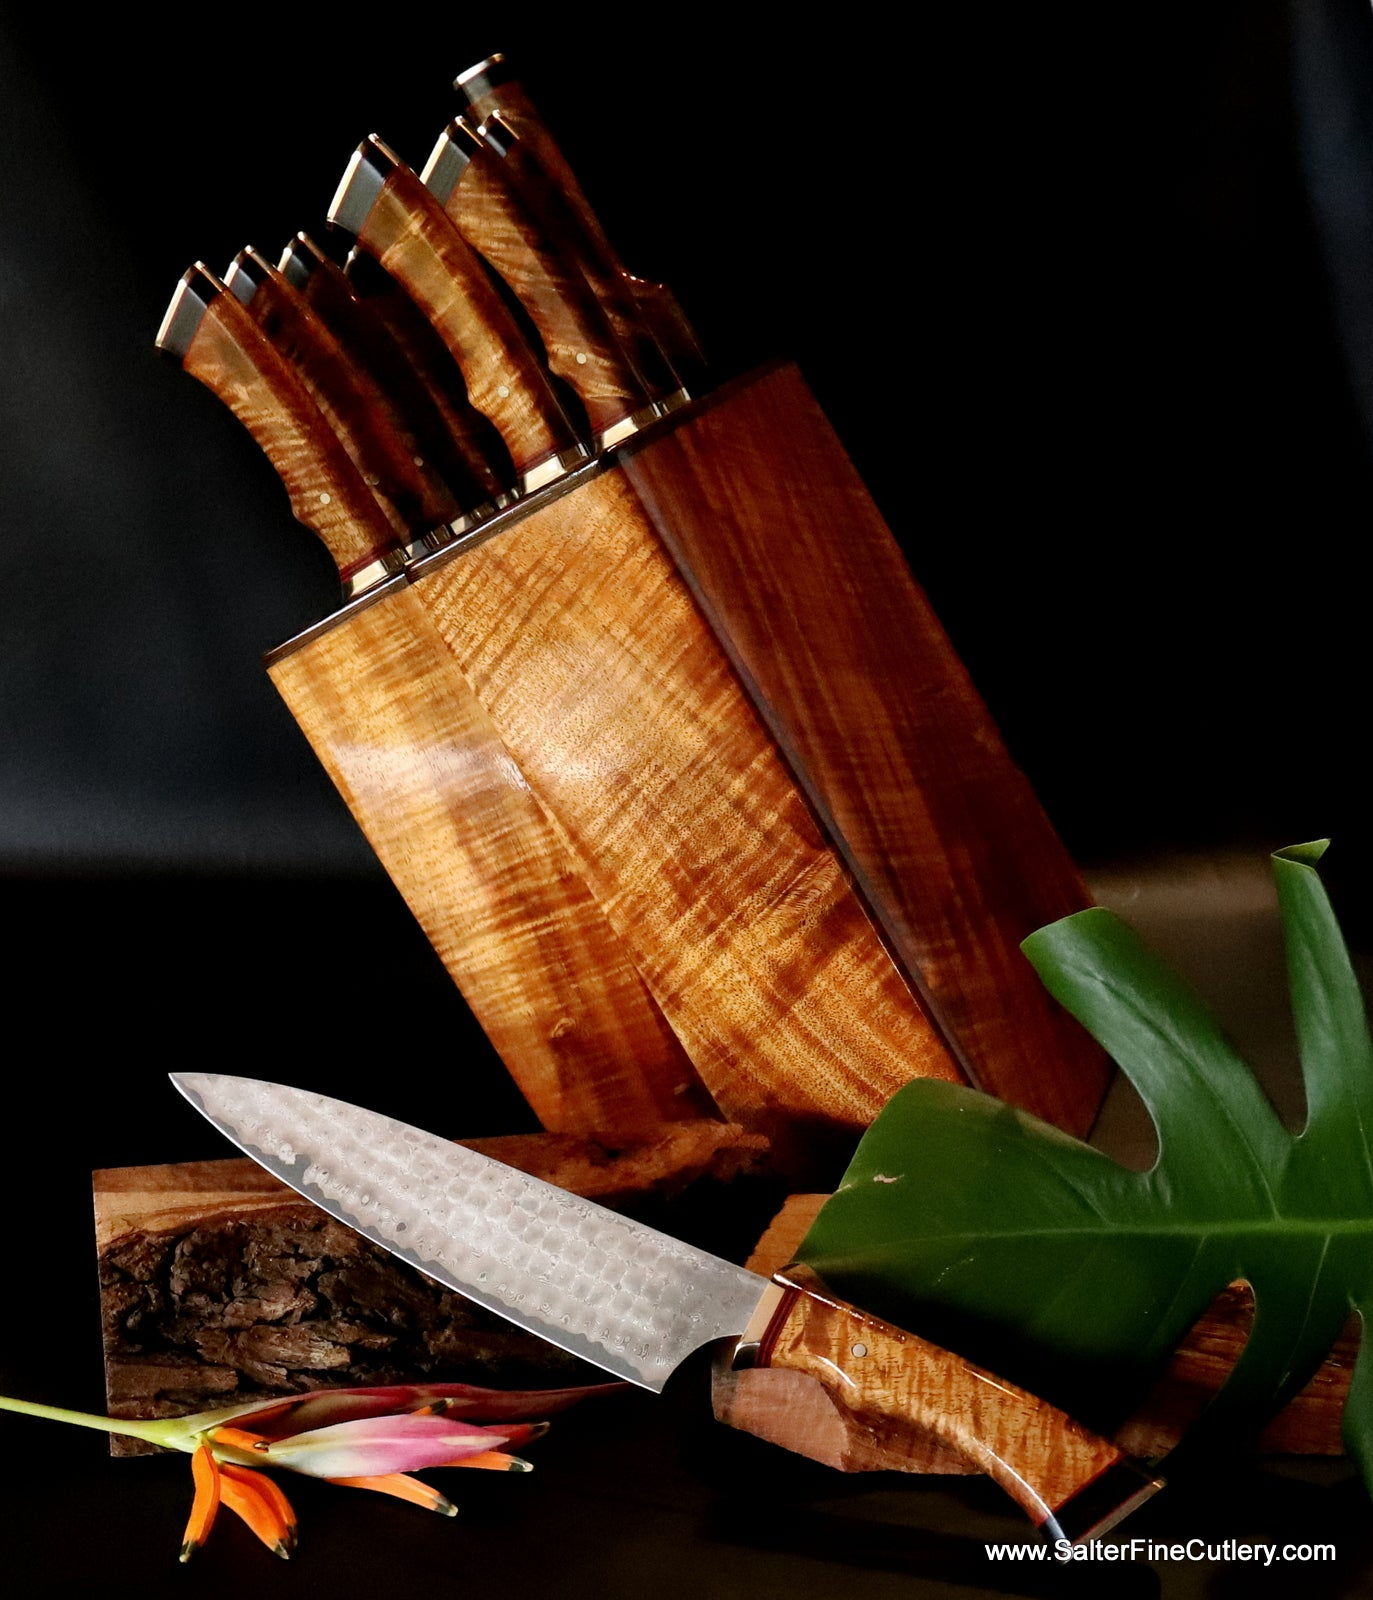 9-piece custom chef knife set with custom knife block made for Tommy Mottola by Salter Fine Cutlery of Hawaii